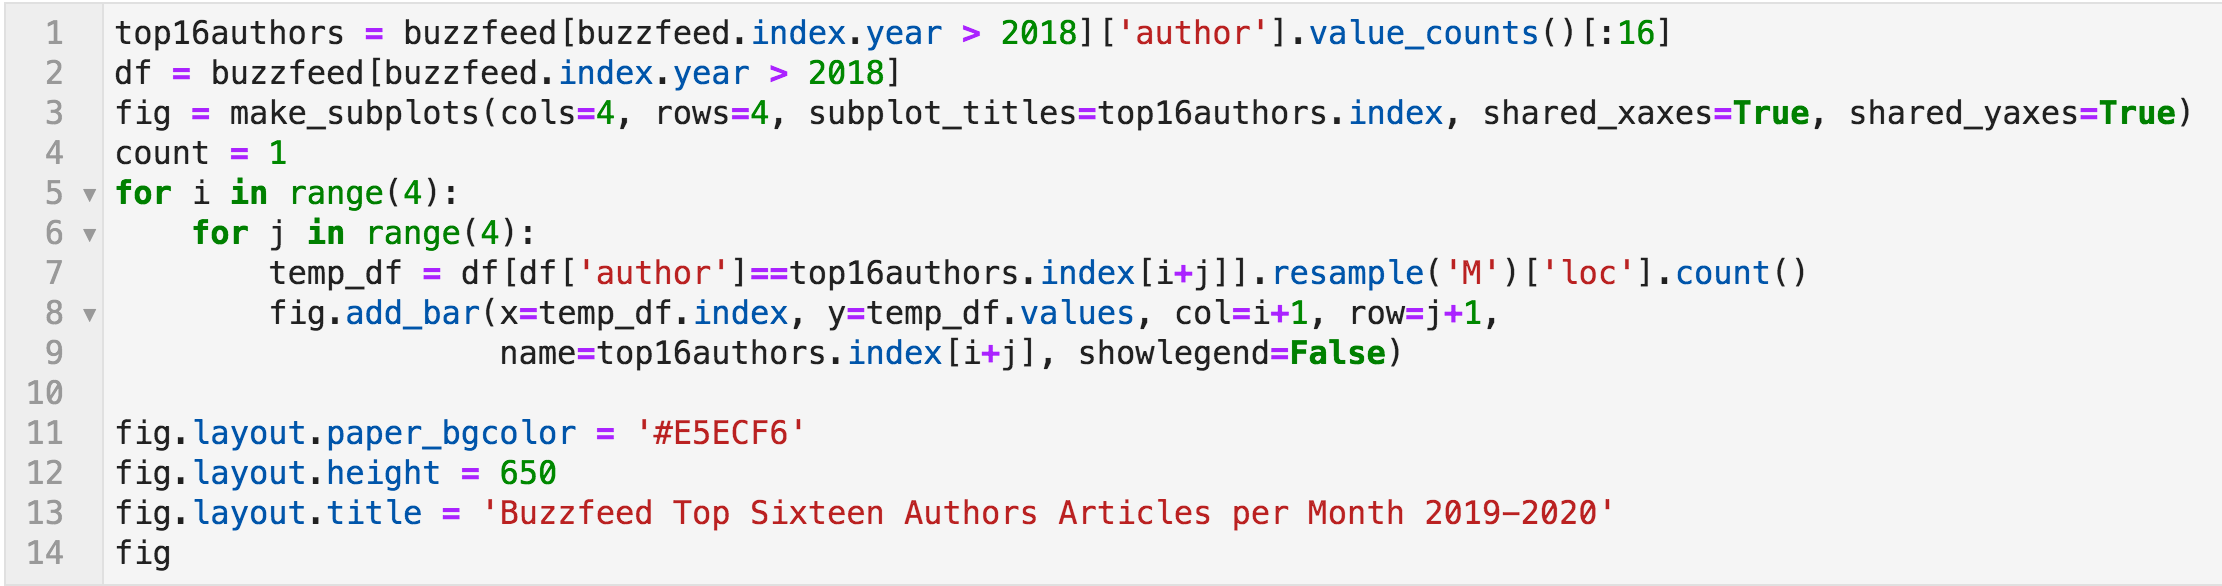 Python shows the number of articles per month per author